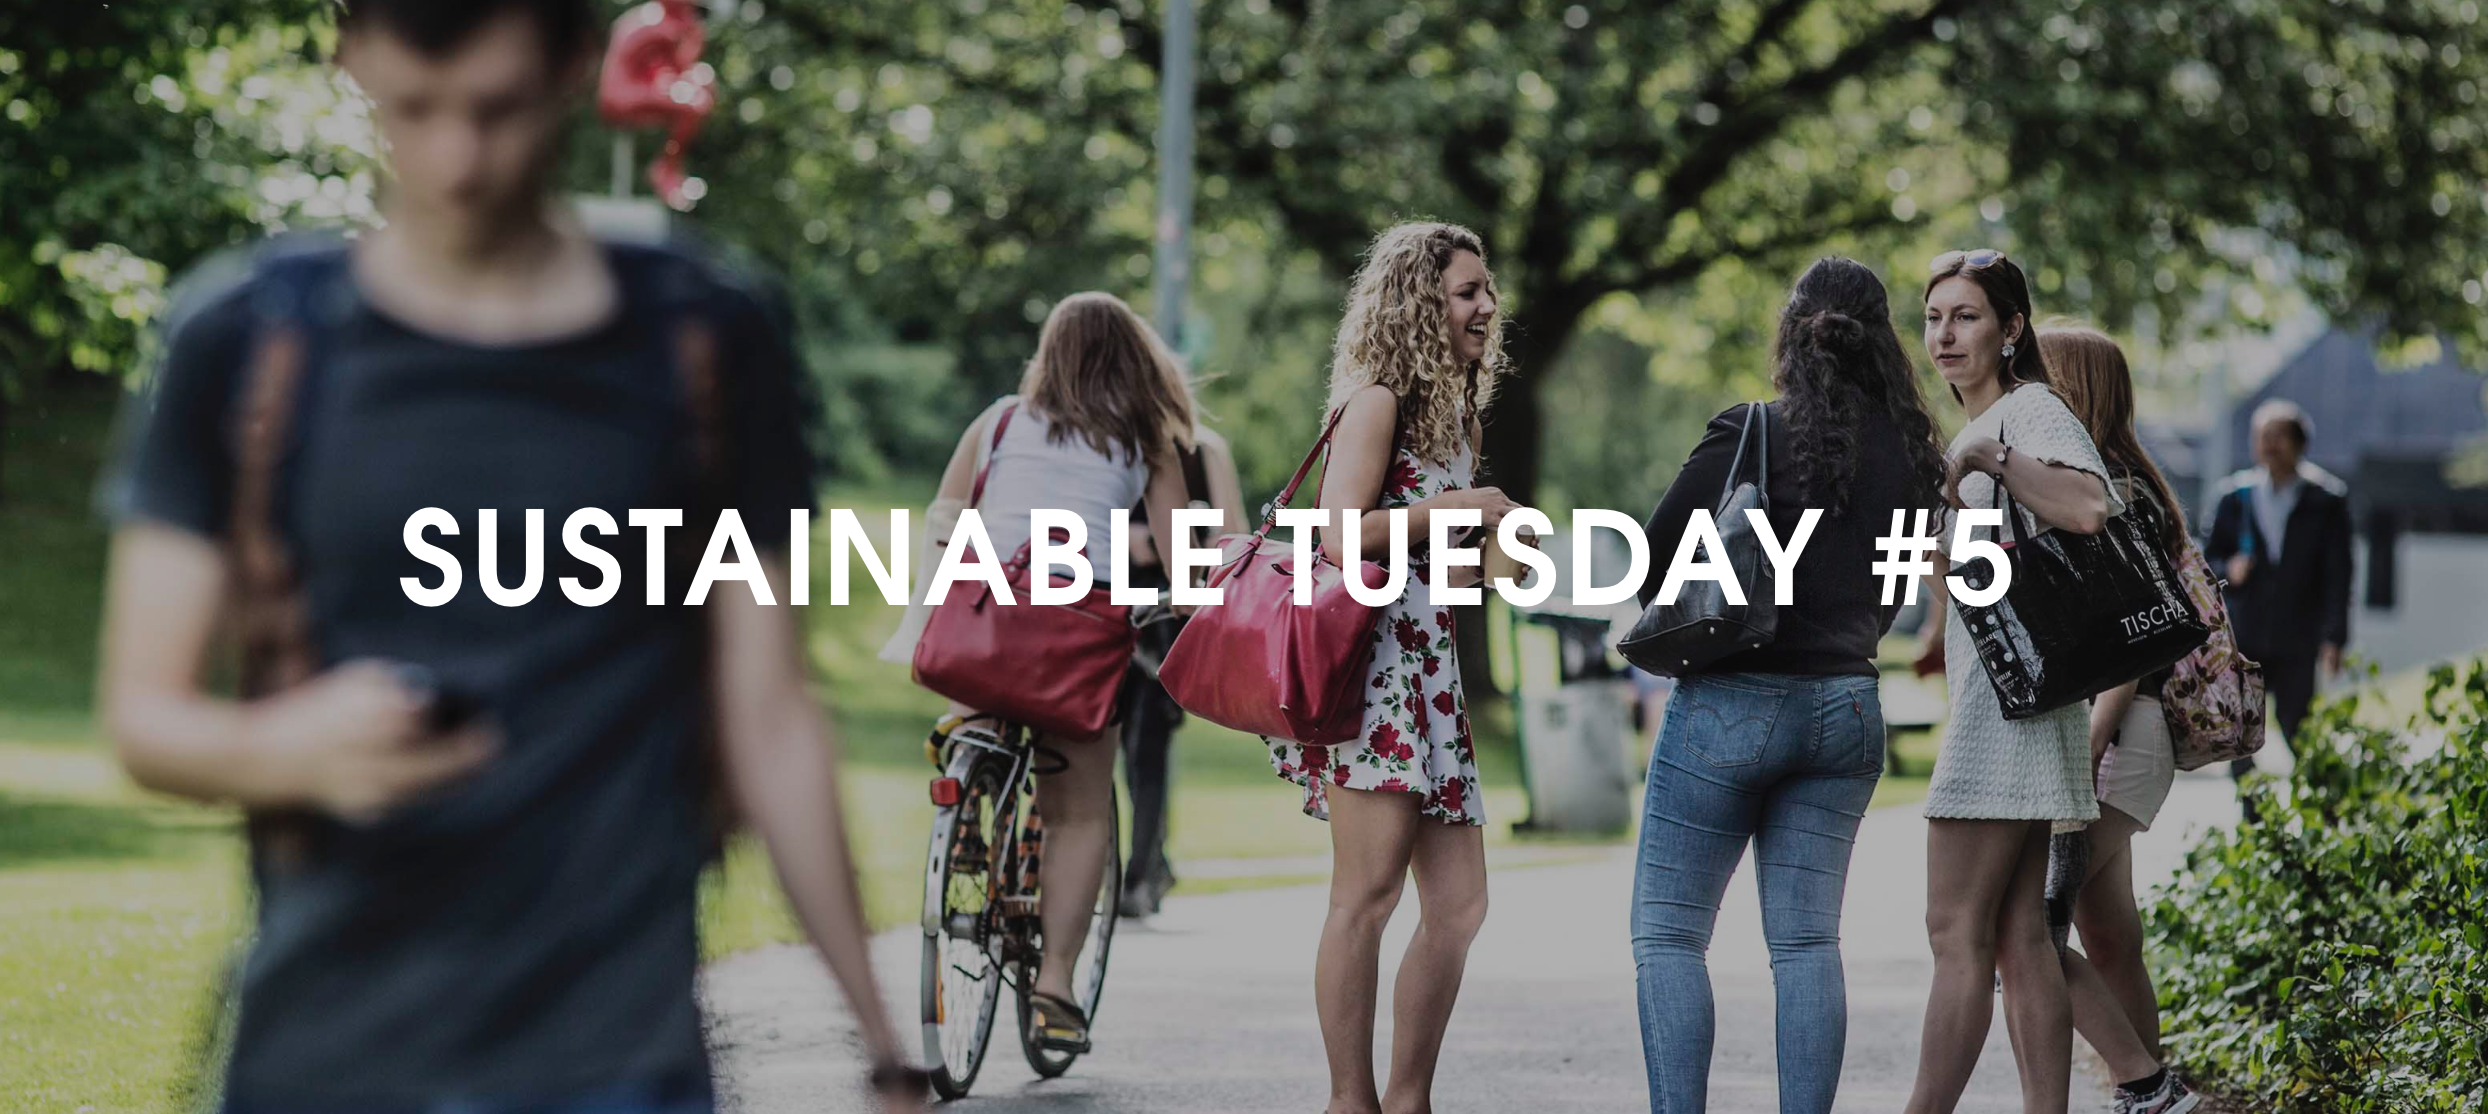 Sustainable Tuesday